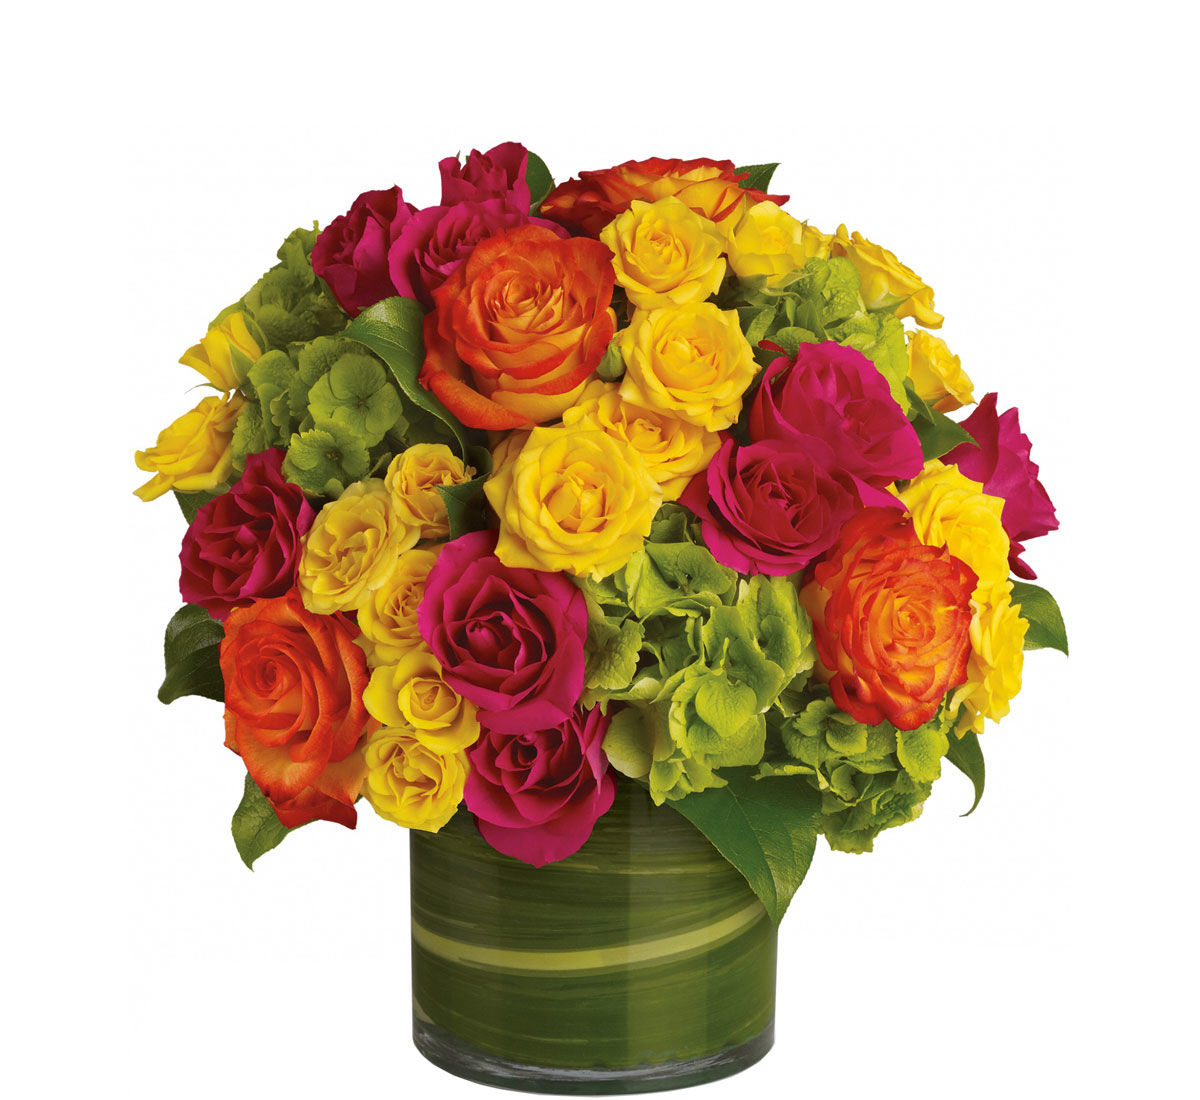 Teleflora flowers canadian teleflora florist canada flowers blossoms in vogue izmirmasajfo